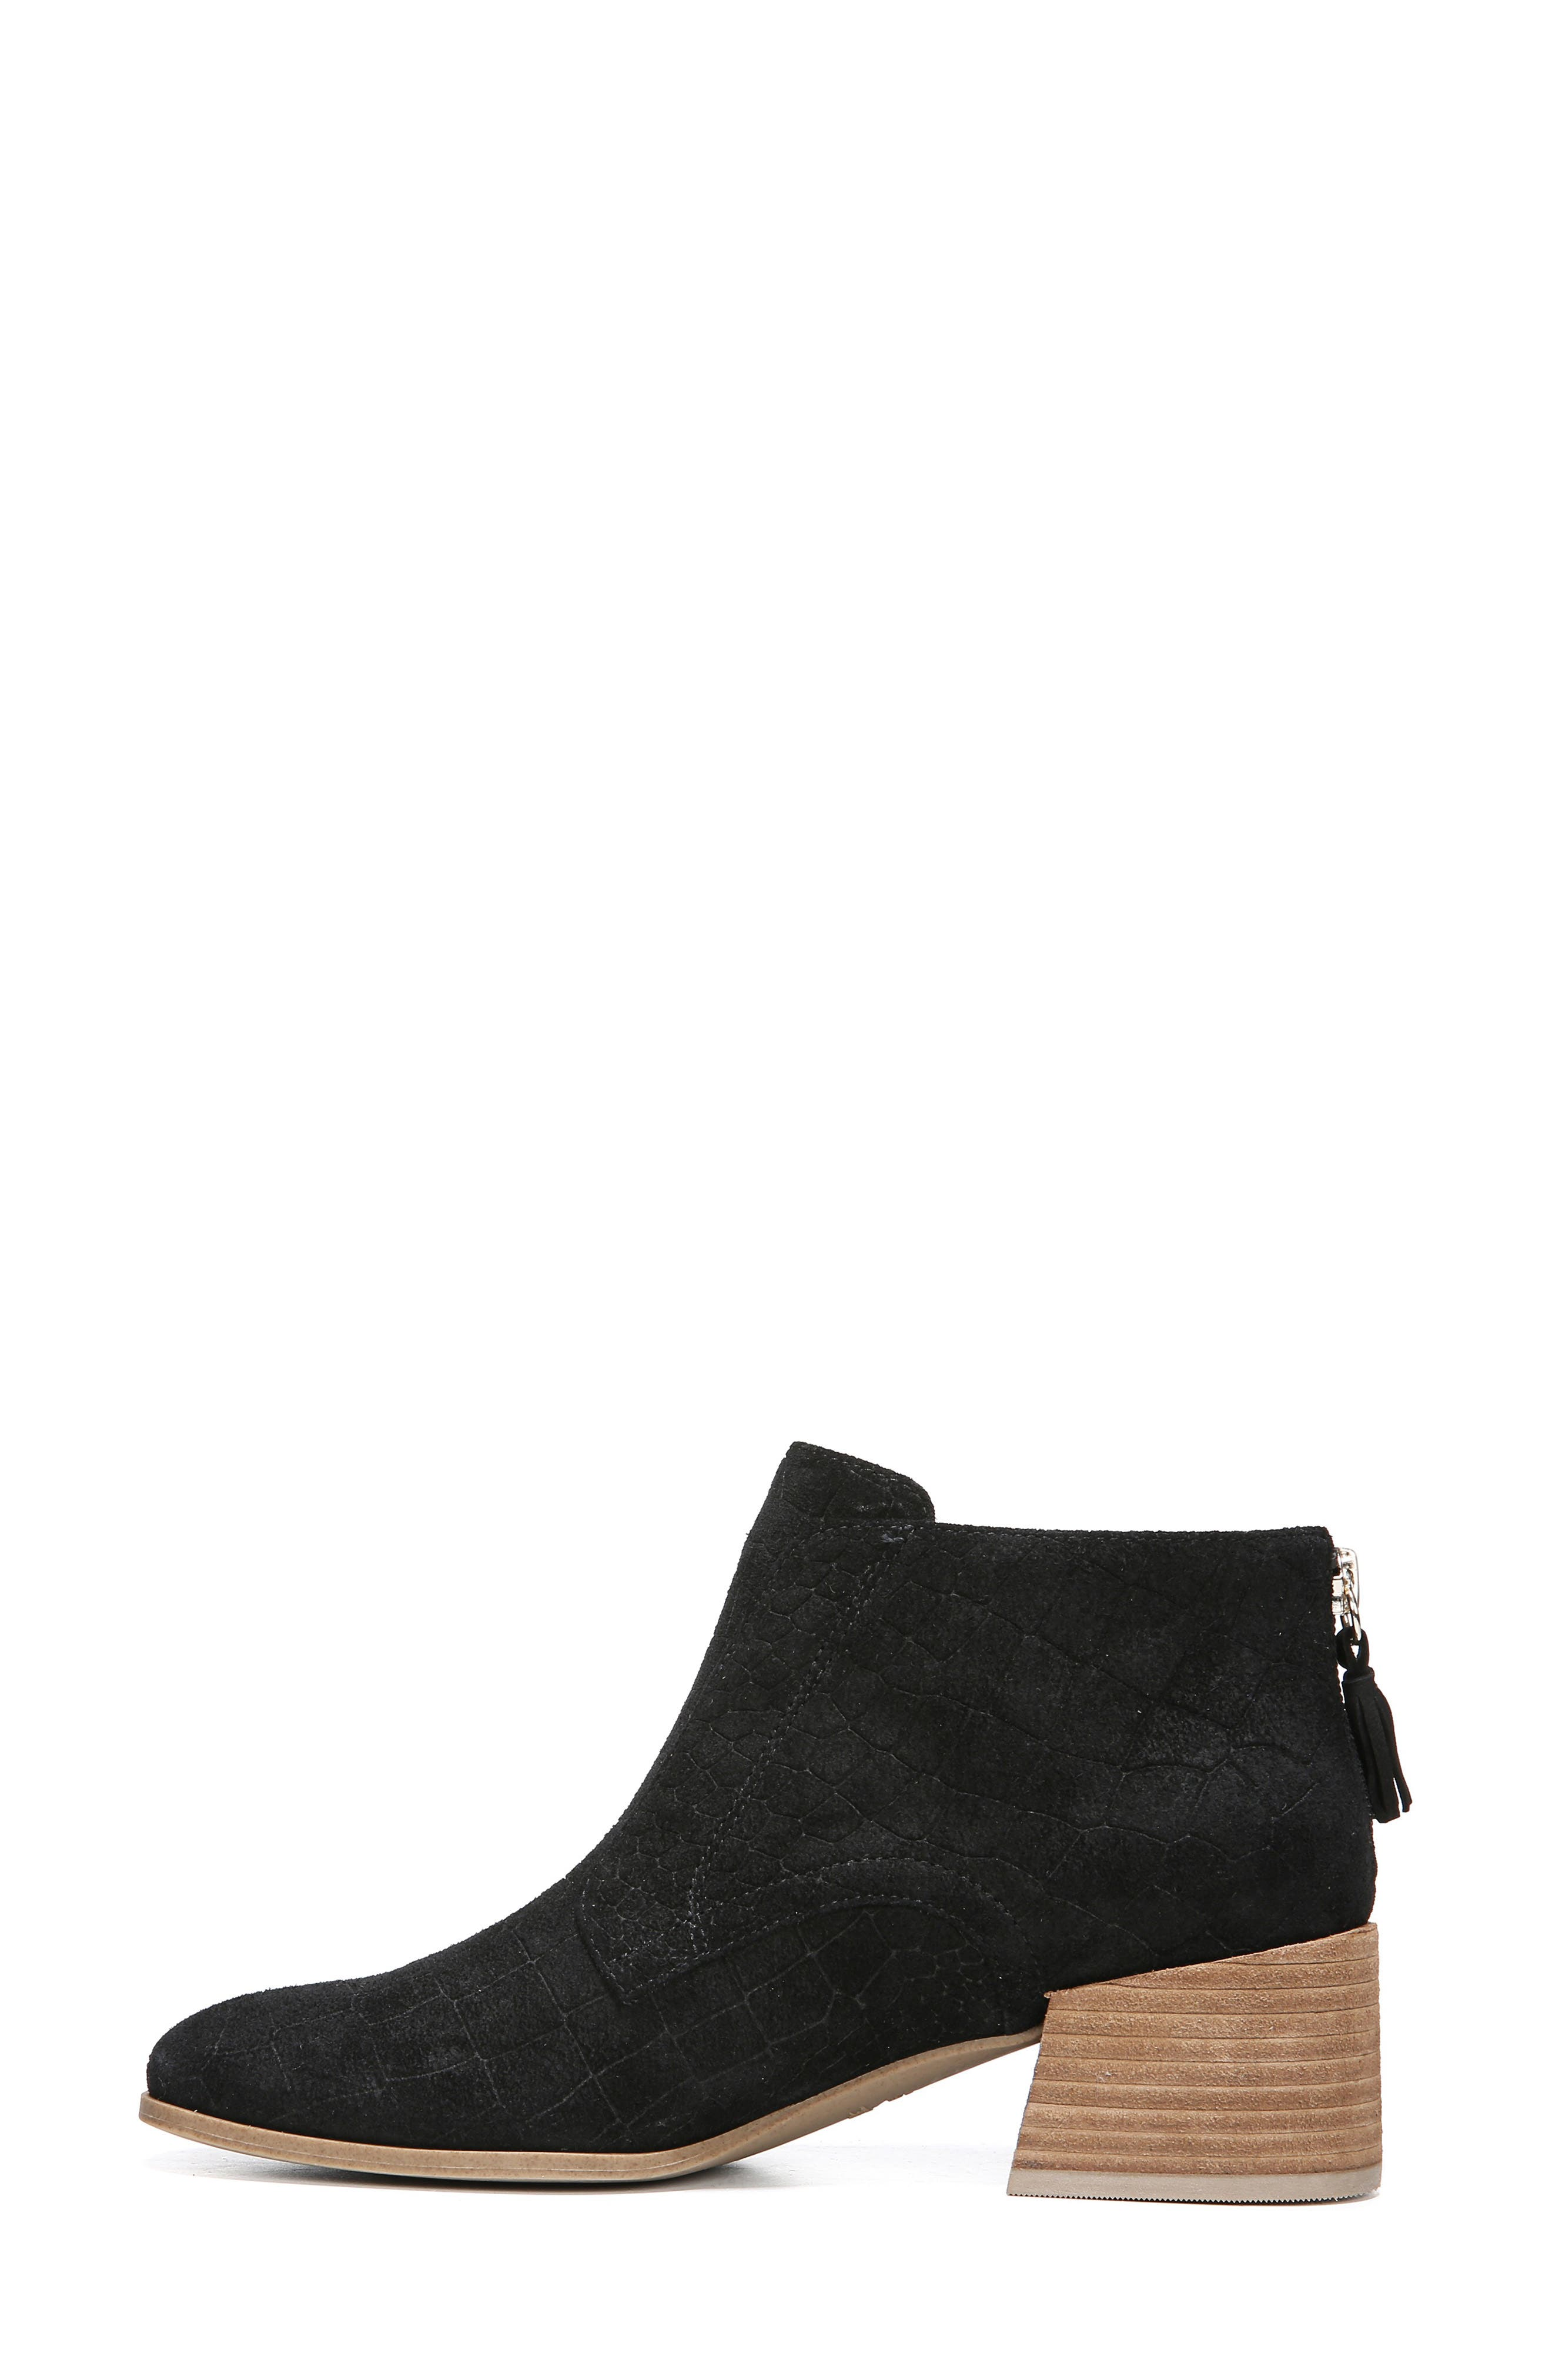 Bianca Bootie,                             Alternate thumbnail 9, color,                             BLACK LEATHER